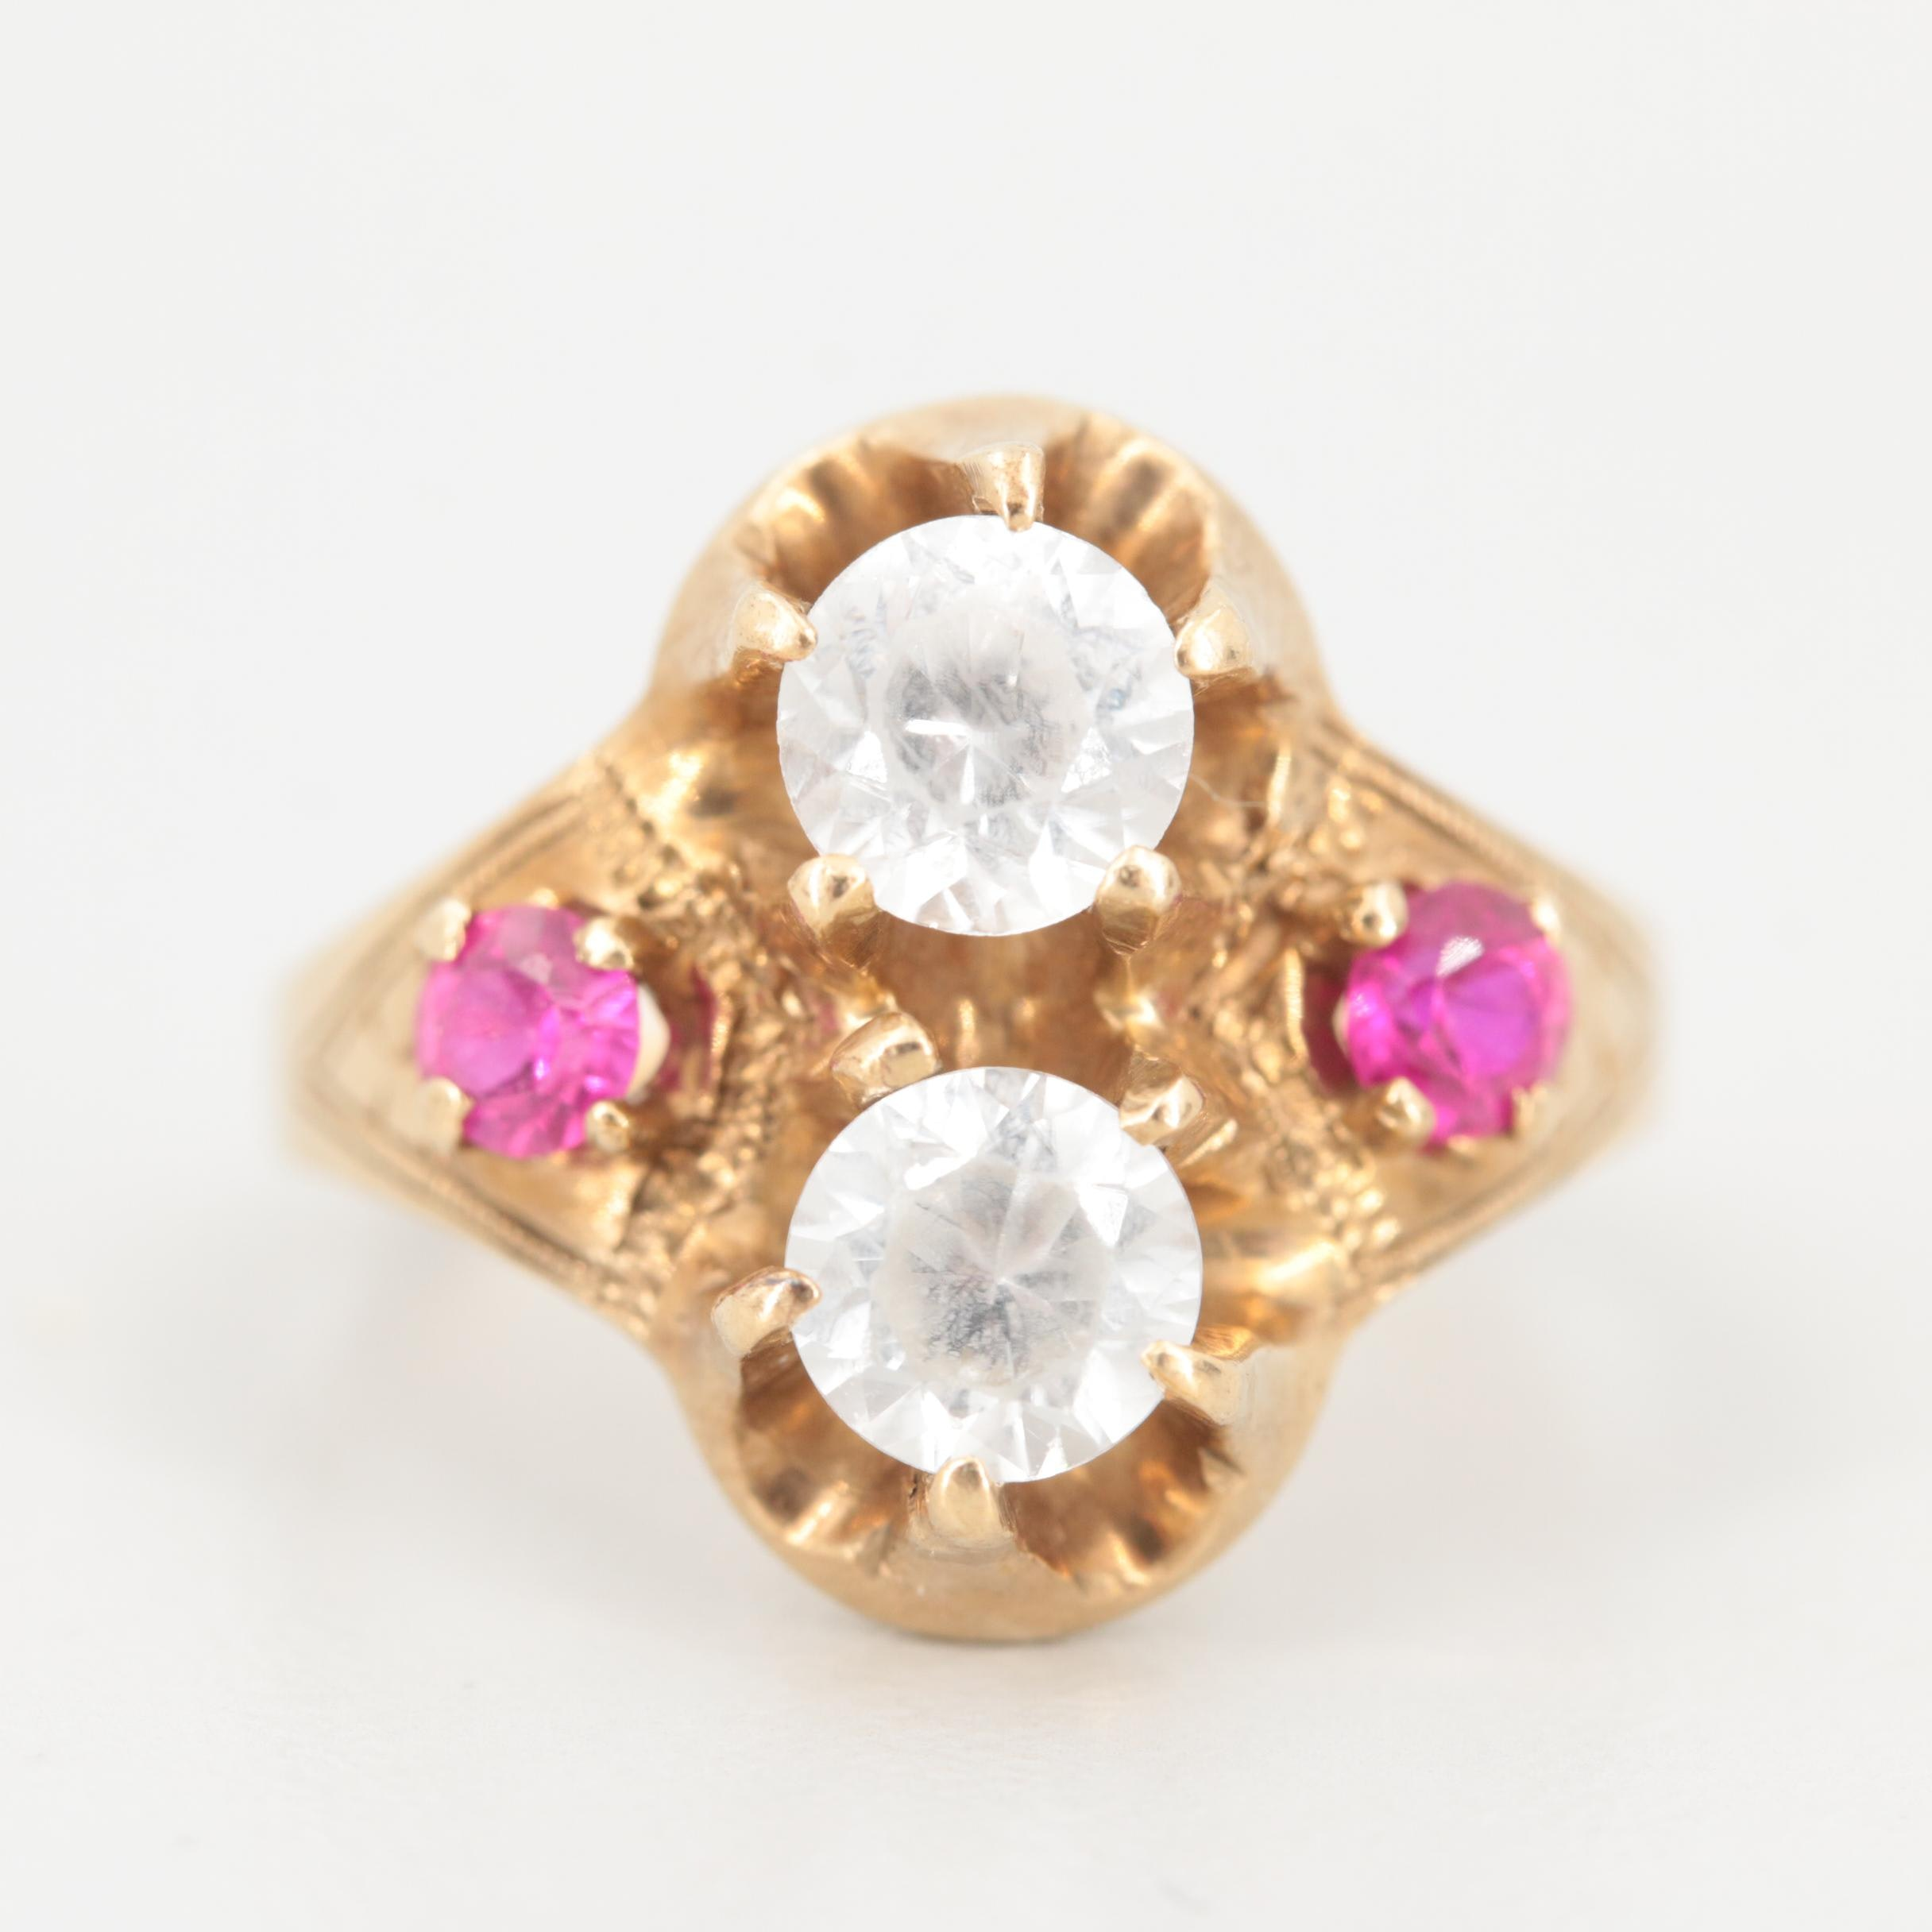 Early 1900s 10K Yellow Gold Zircon and Synthetic Ruby Ring